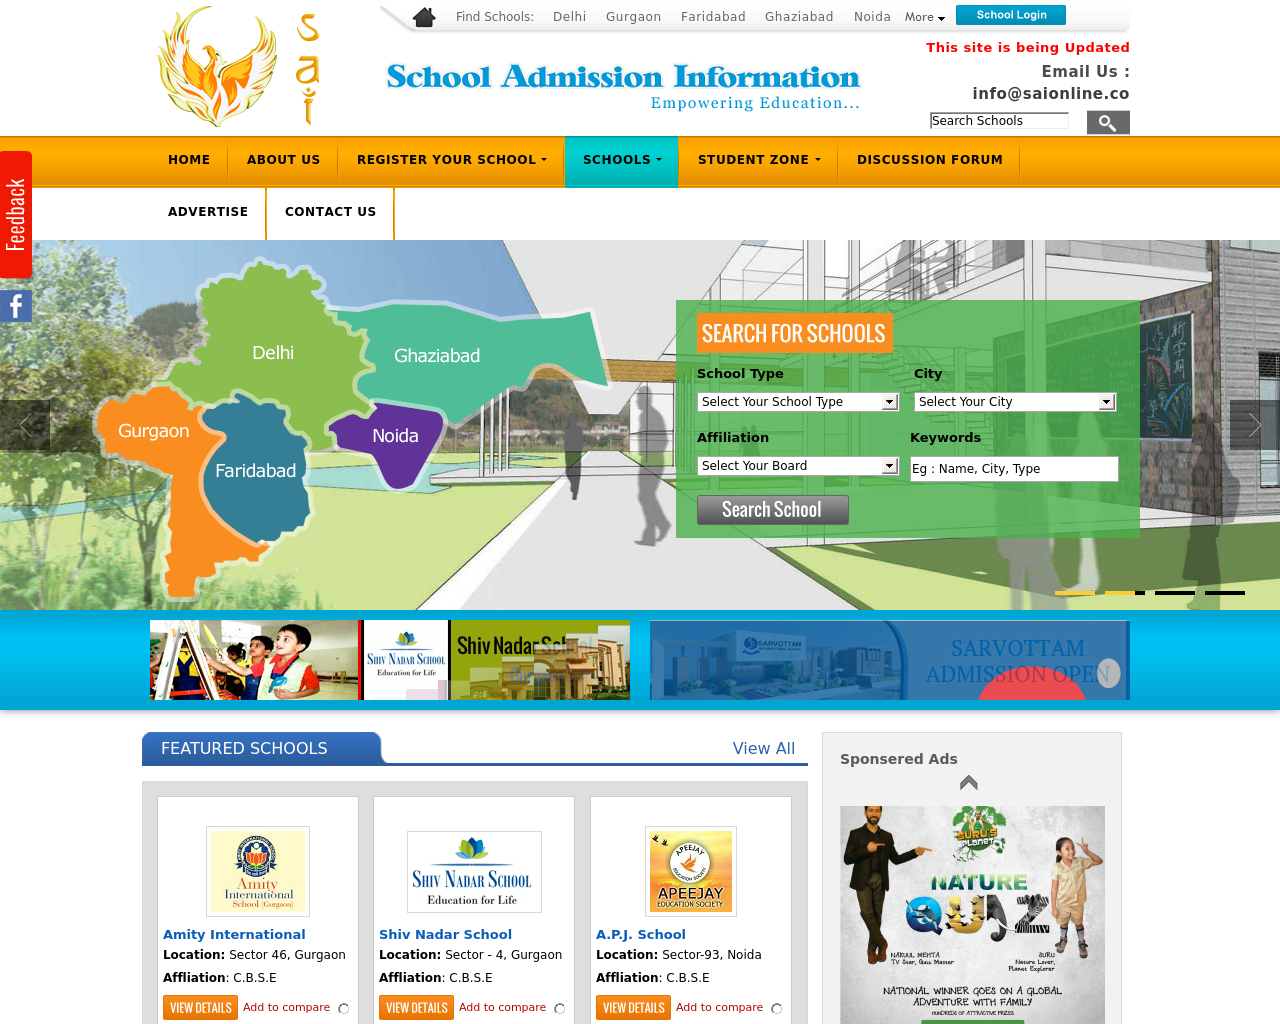 School-Admission-Information-Advertising-Reviews-Pricing